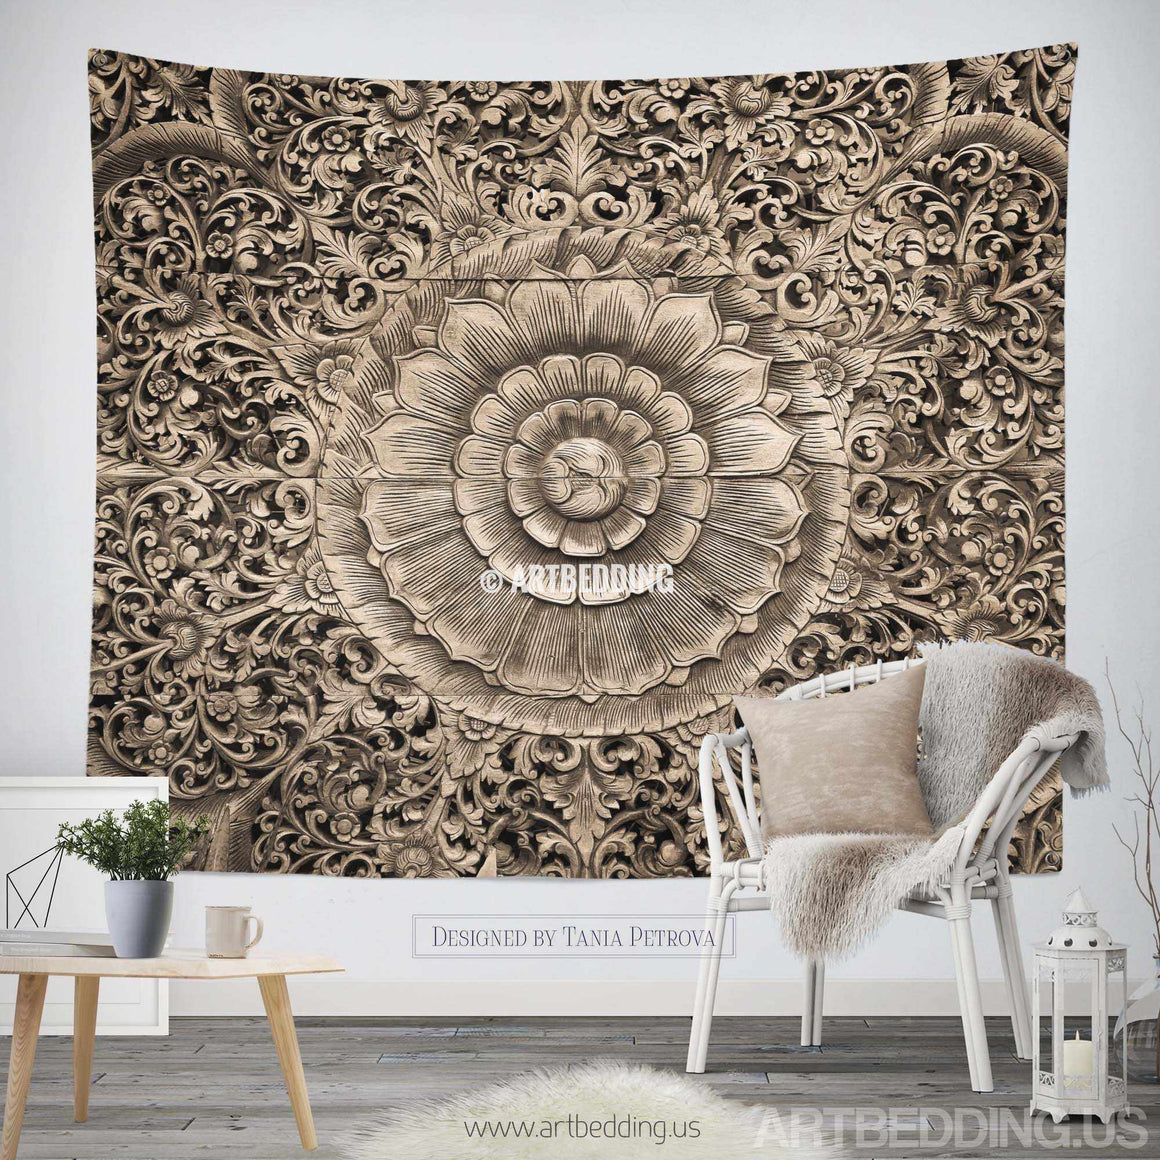 Mandala Tapestry, Carved wood mandala wall tapestry, Carved wood tapestry wall hanging, bohemian wall tapestries, Boho tapestries, Mandala bohemian decor Tapestry